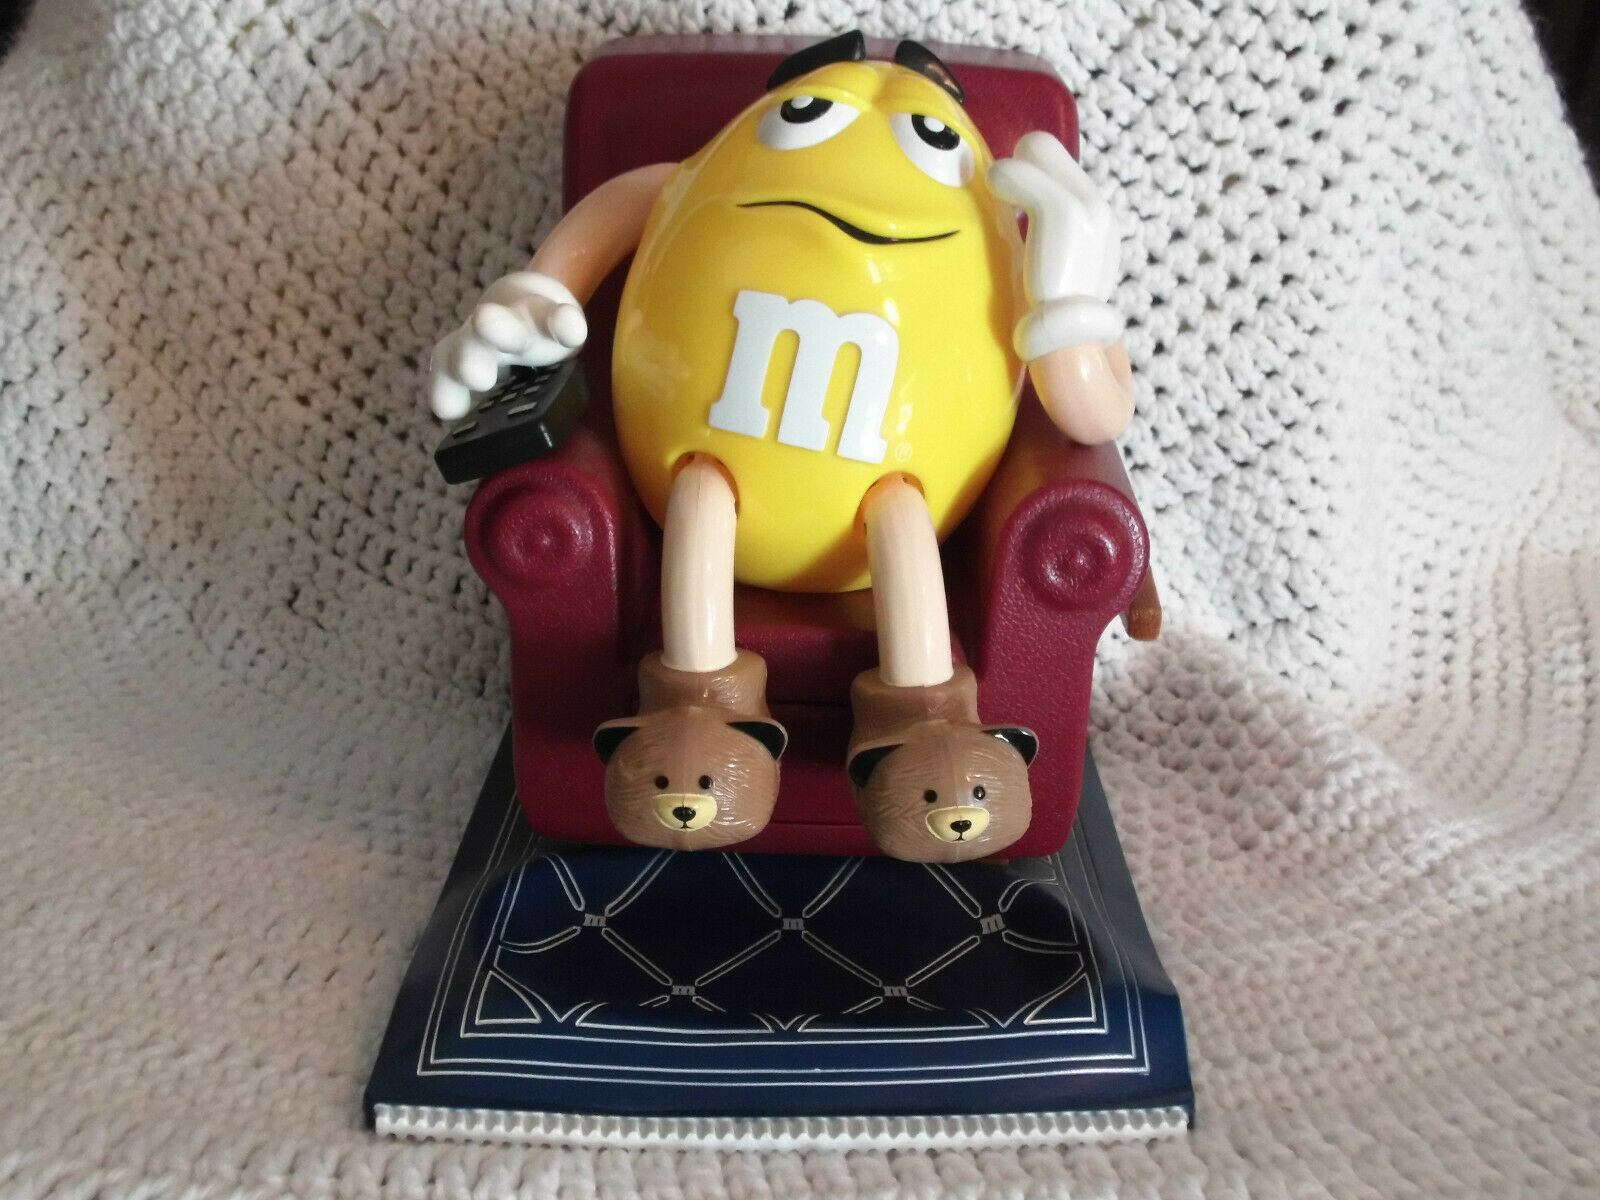 1999 M & M's Lazy Boy Recliner Easy Chair Yellow Candy Dispenser - $9.99